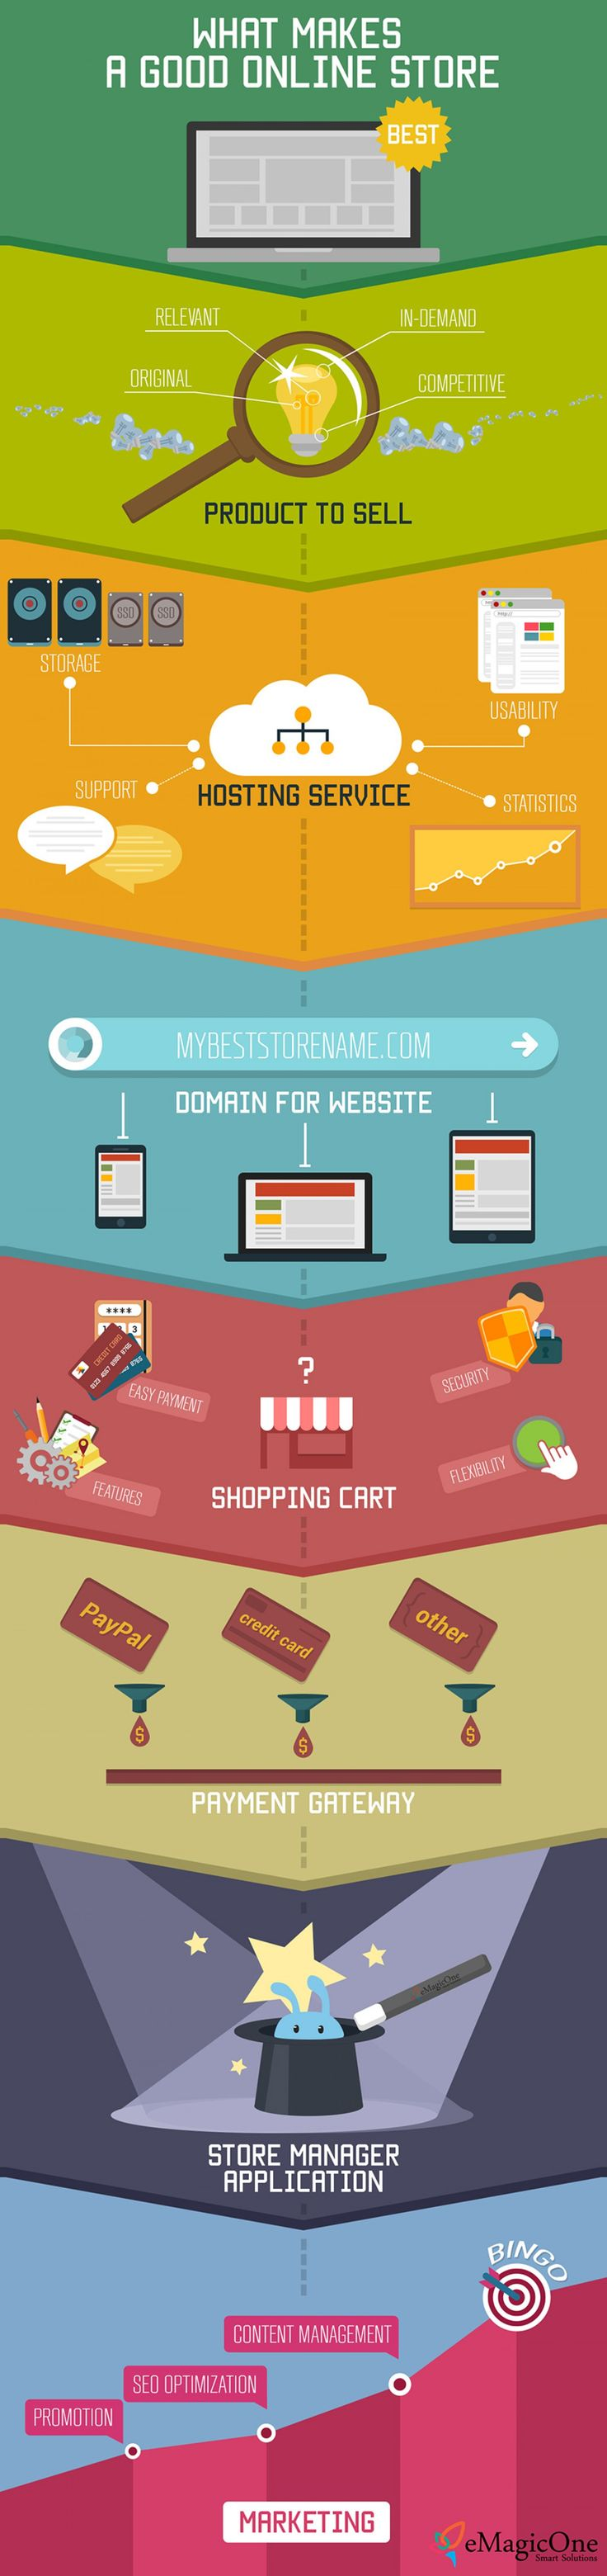 What Makes a Good Online Store Infographic #onlinestore contact us if you want to know how we can help!